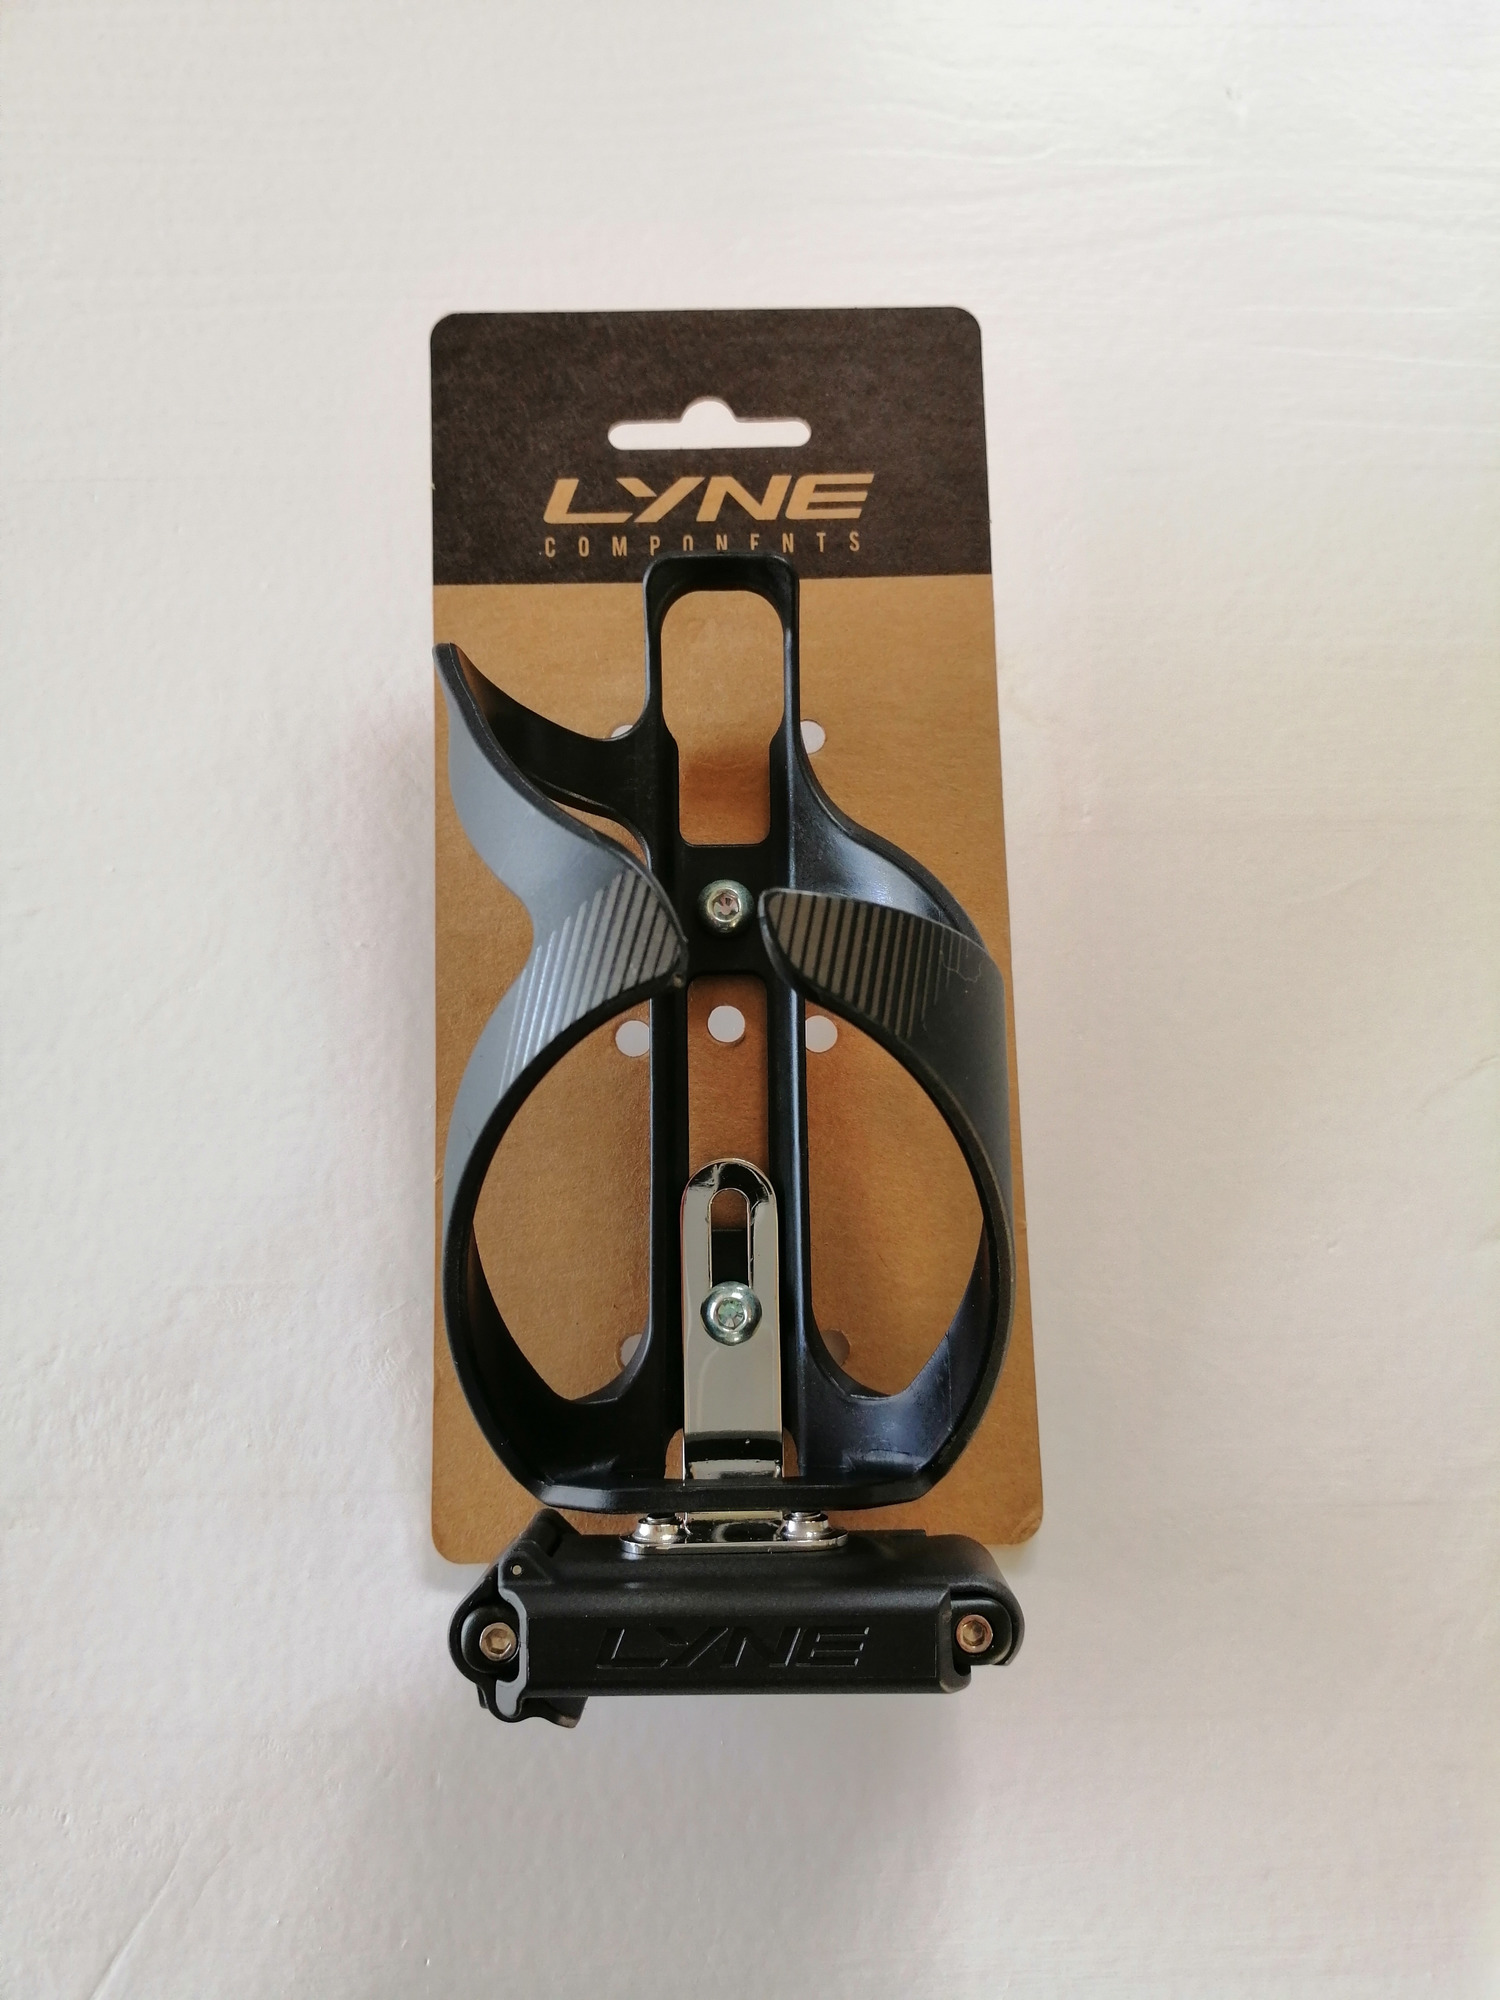 Lyne Components Bottle cage